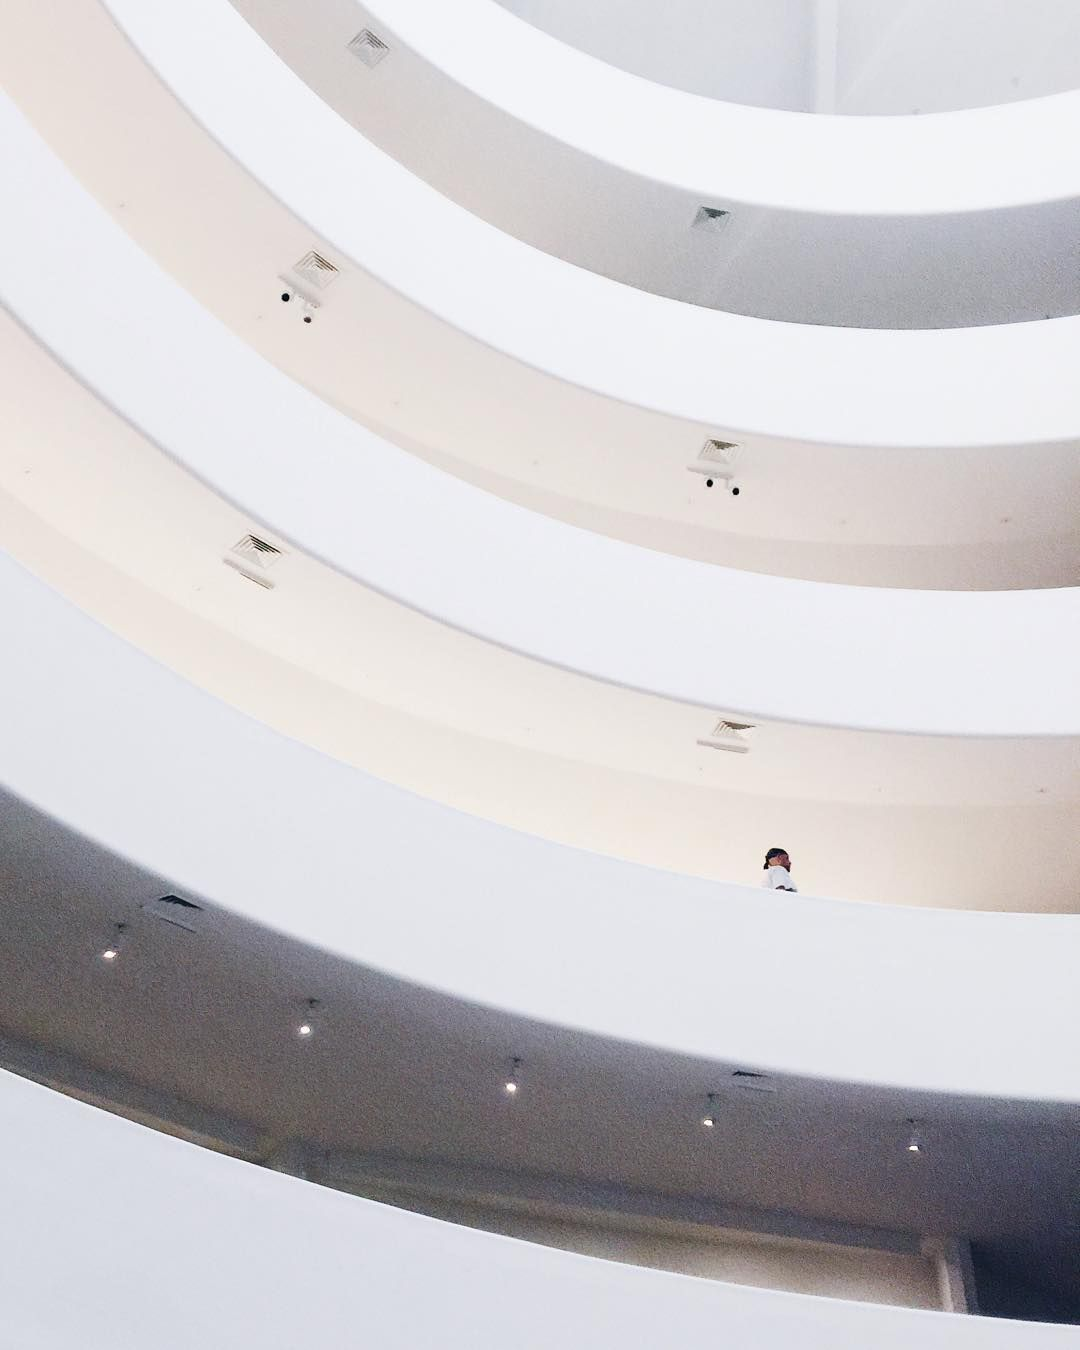 It's just my luck that I would go to the Guggenheim on one of the three times they close the Rotunda to change out the artwork. Doh!  #guggenheim #rotunda #minimal #NYC #art #travel #museum